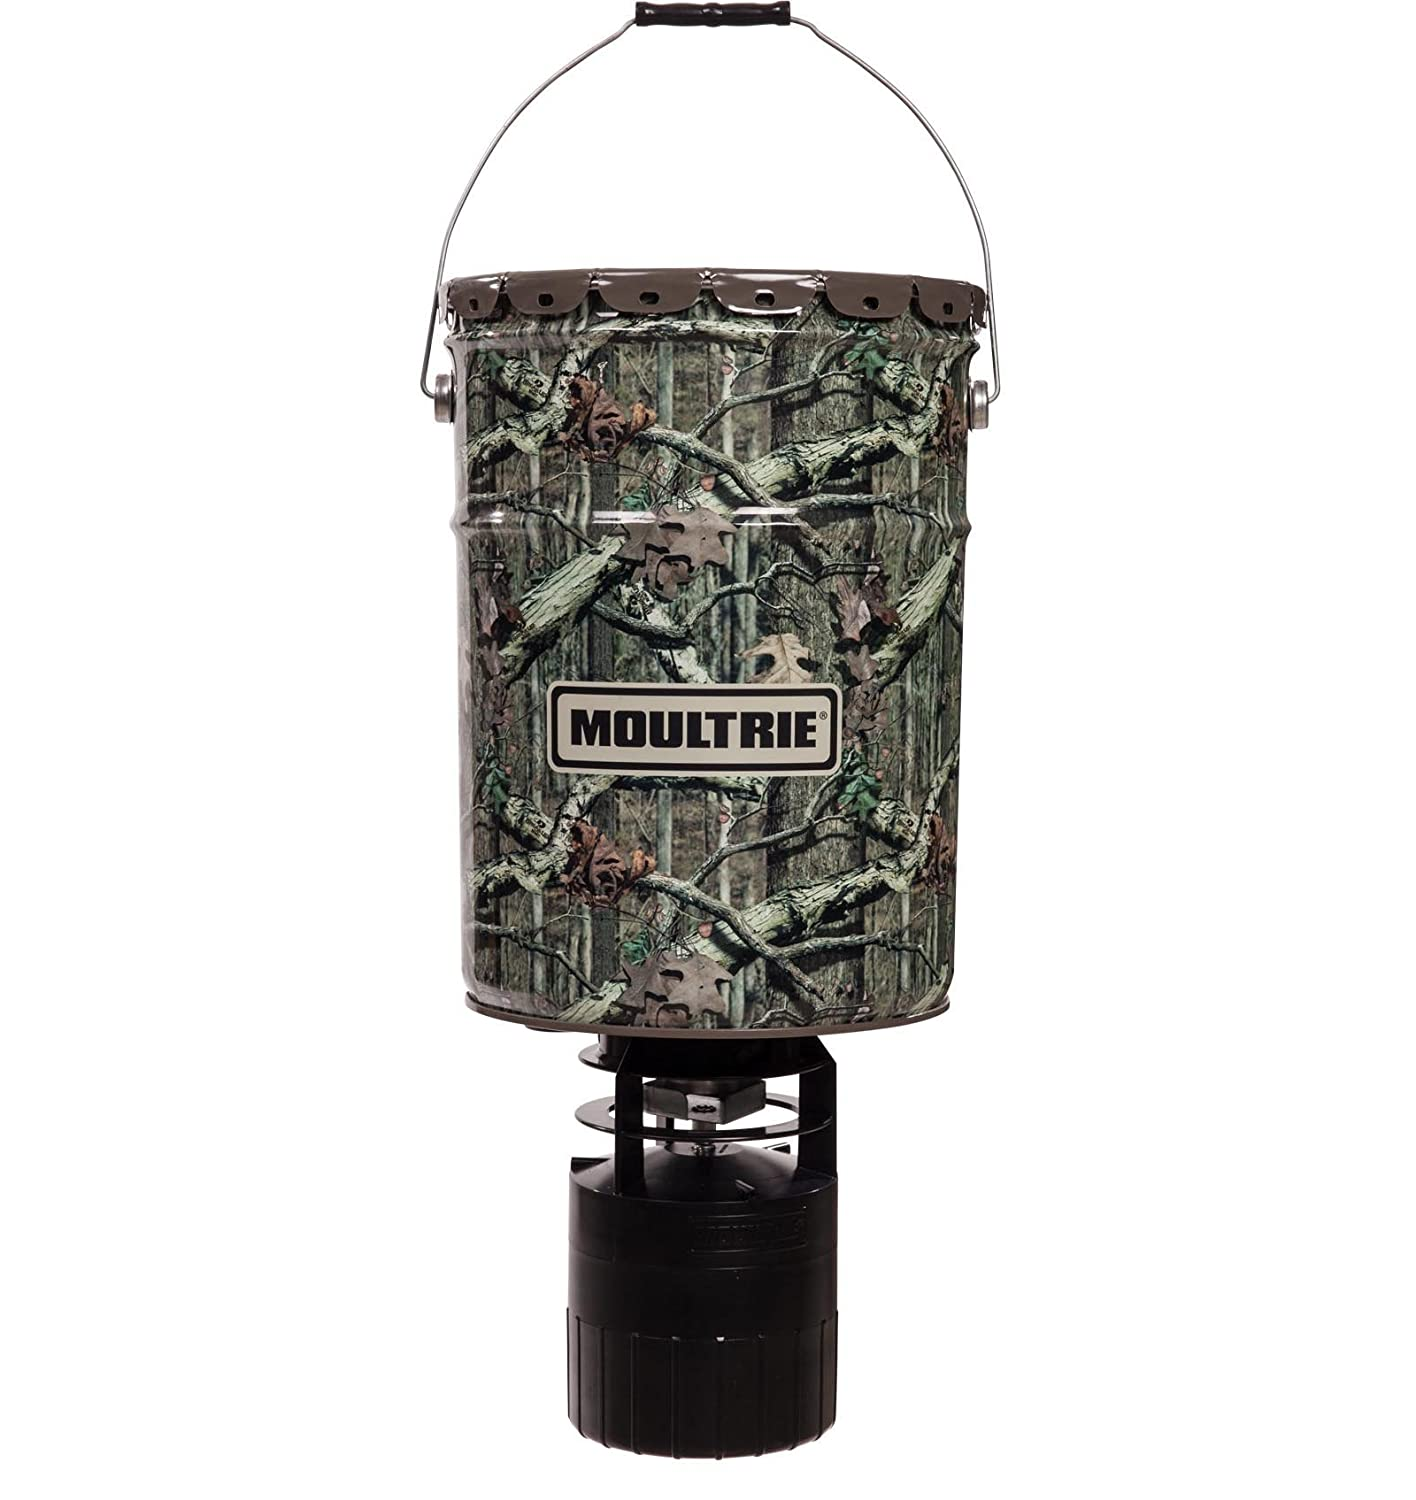 moultrie pro hunter 6.5-gallon. hanging feeder